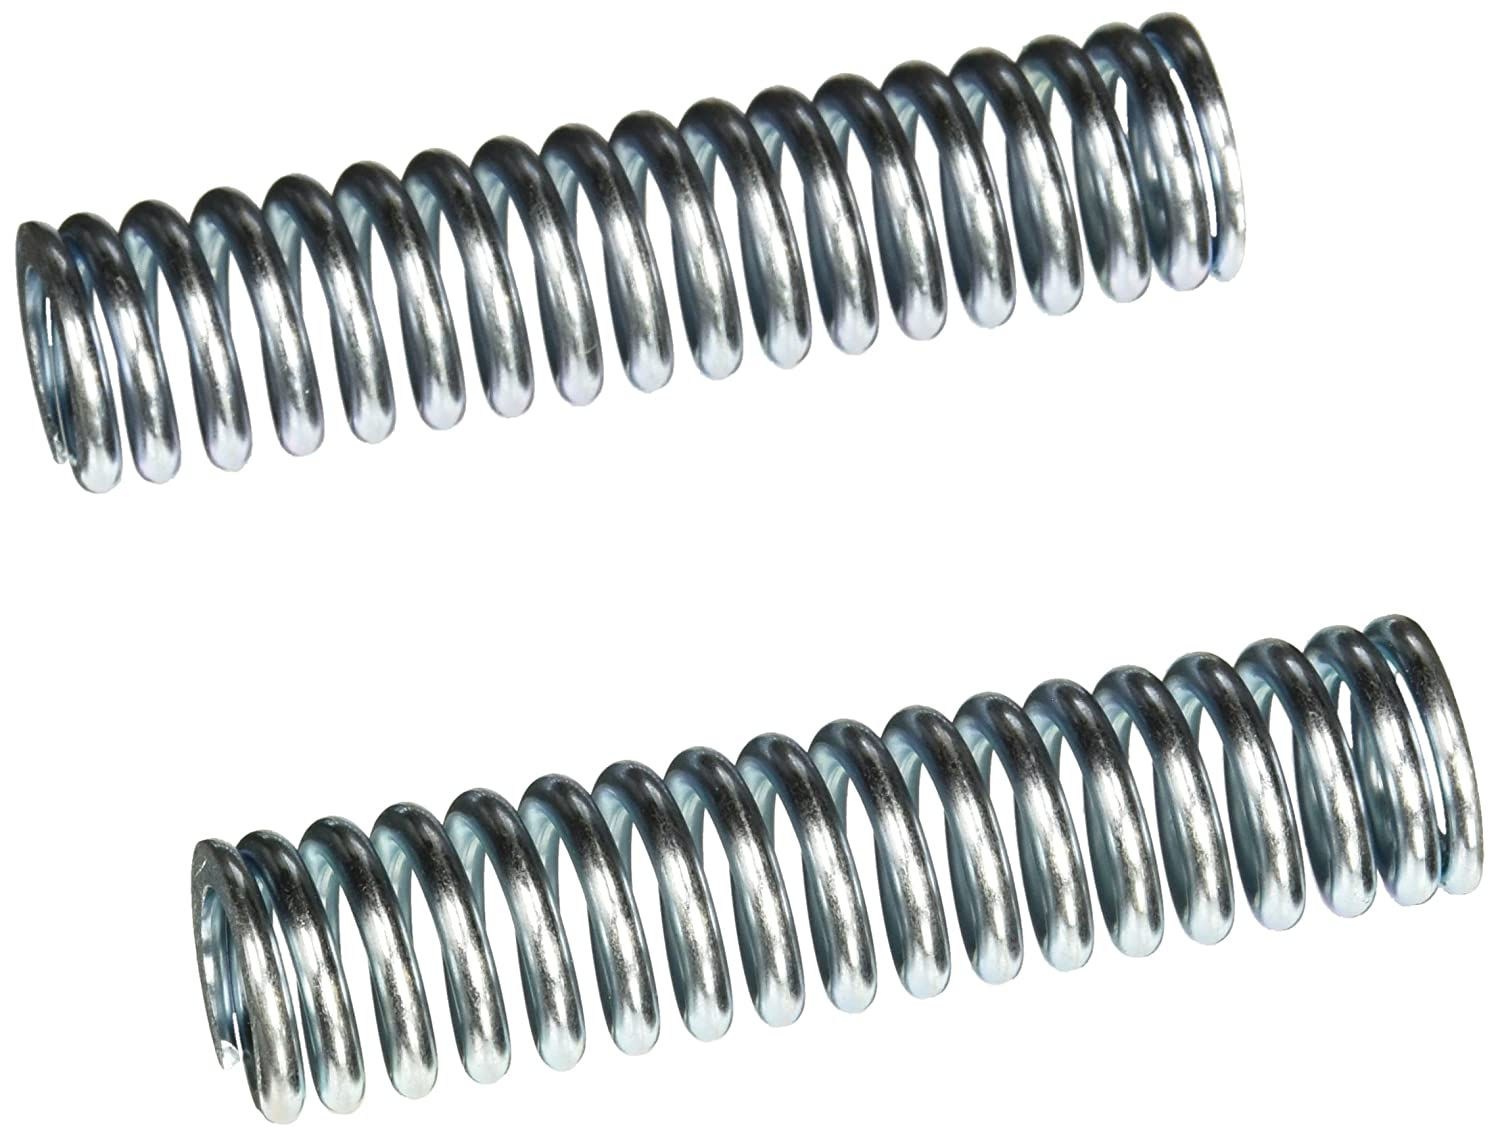 Prime Line Products SP 9732 Compression Spring with .148 Diameter 15 16 x 4